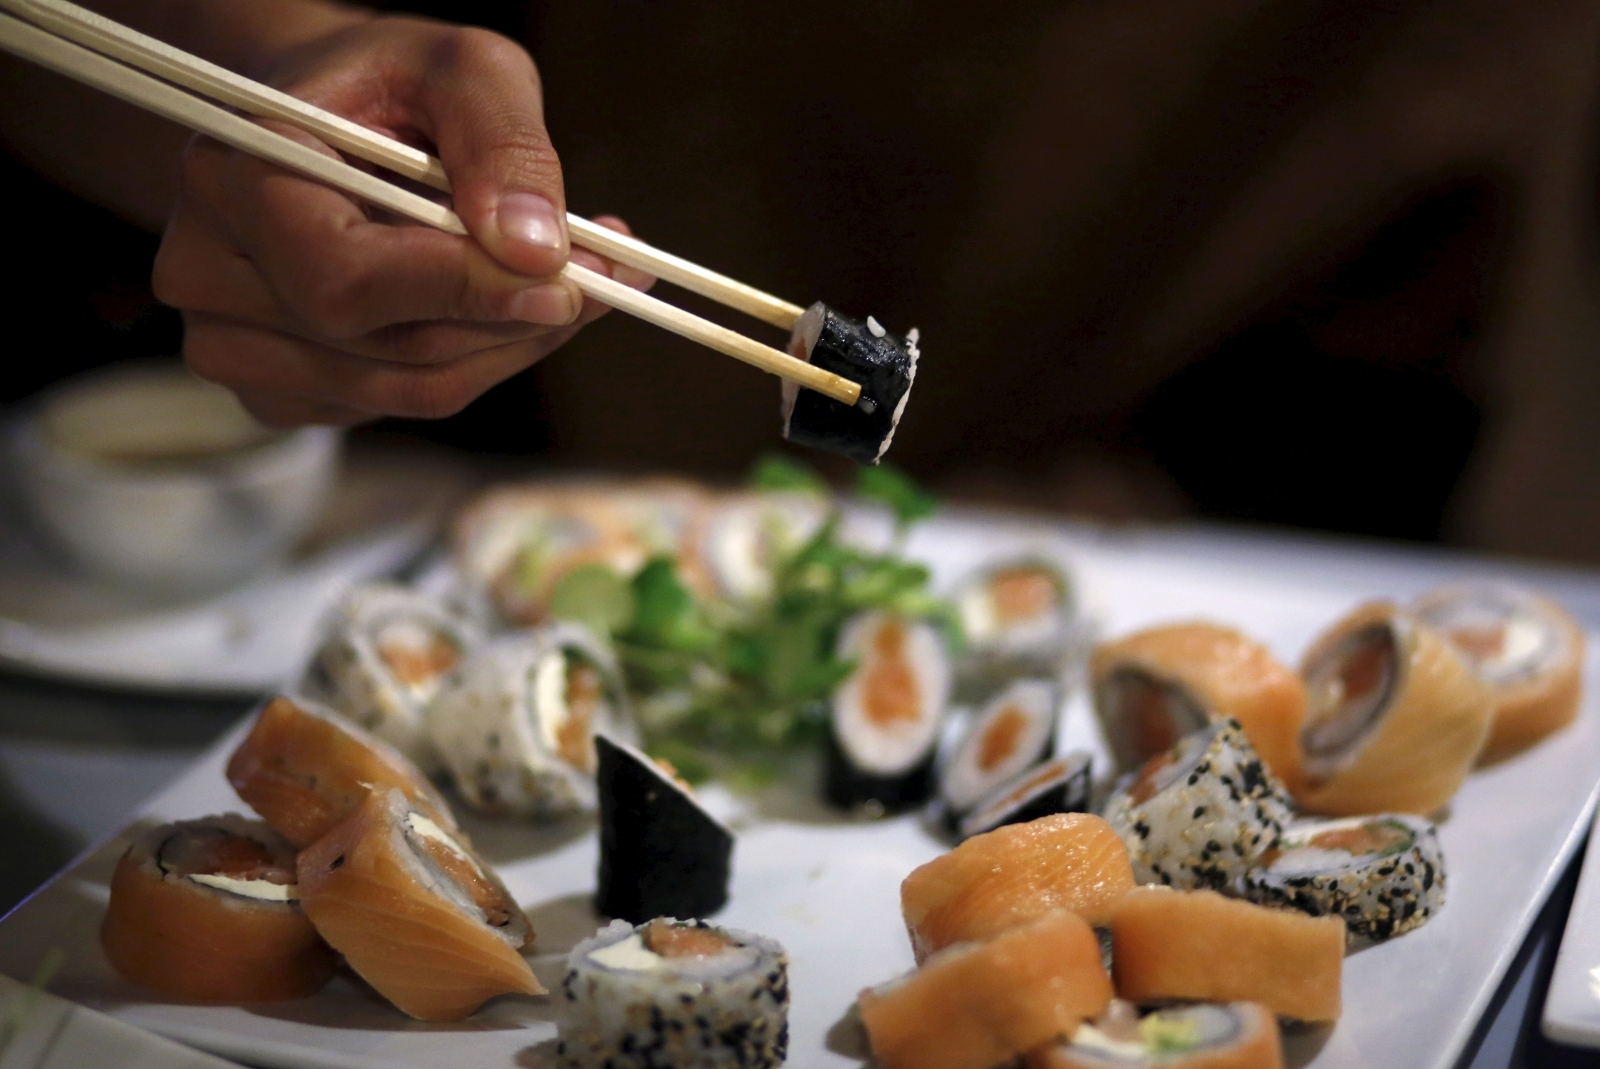 5-foot tapeworm wiggles out of California man after eating sushi